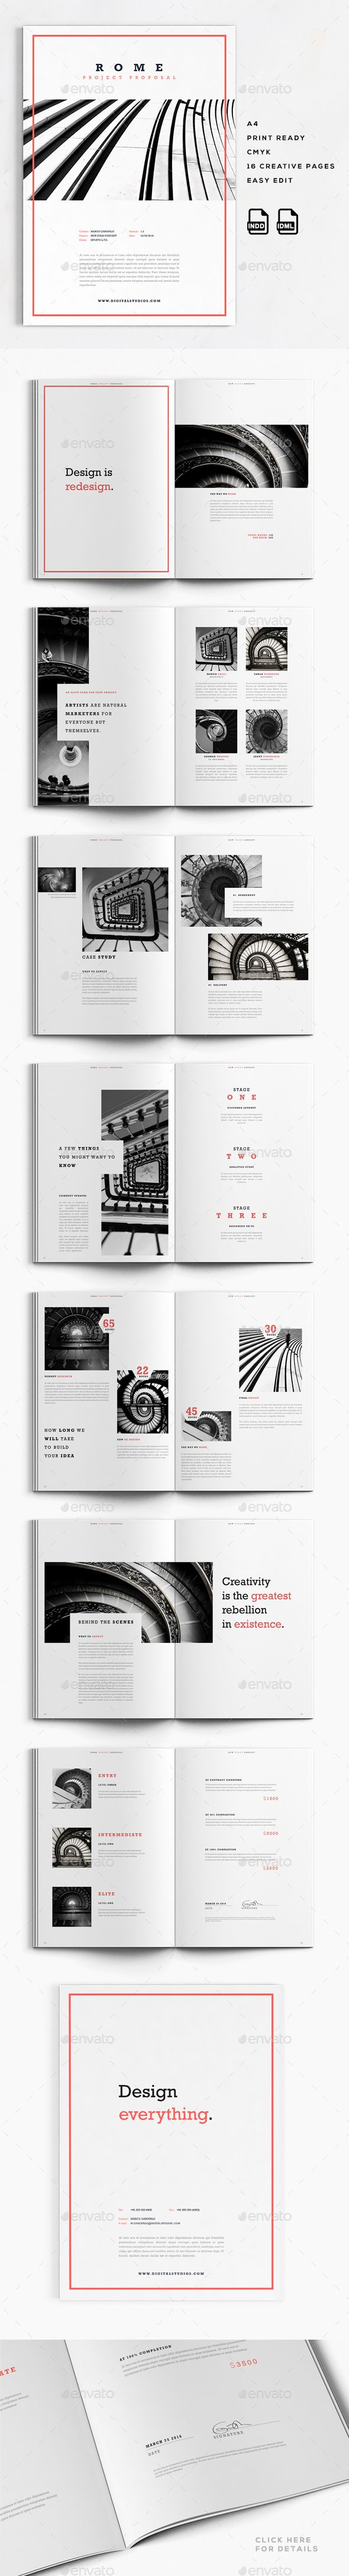 Rome is a 16 Pages Business Proposal Brochure ready for your business. FeaturesPrint Ready, CMYK, 300 DPI 16 Elegant, Modern, Crea